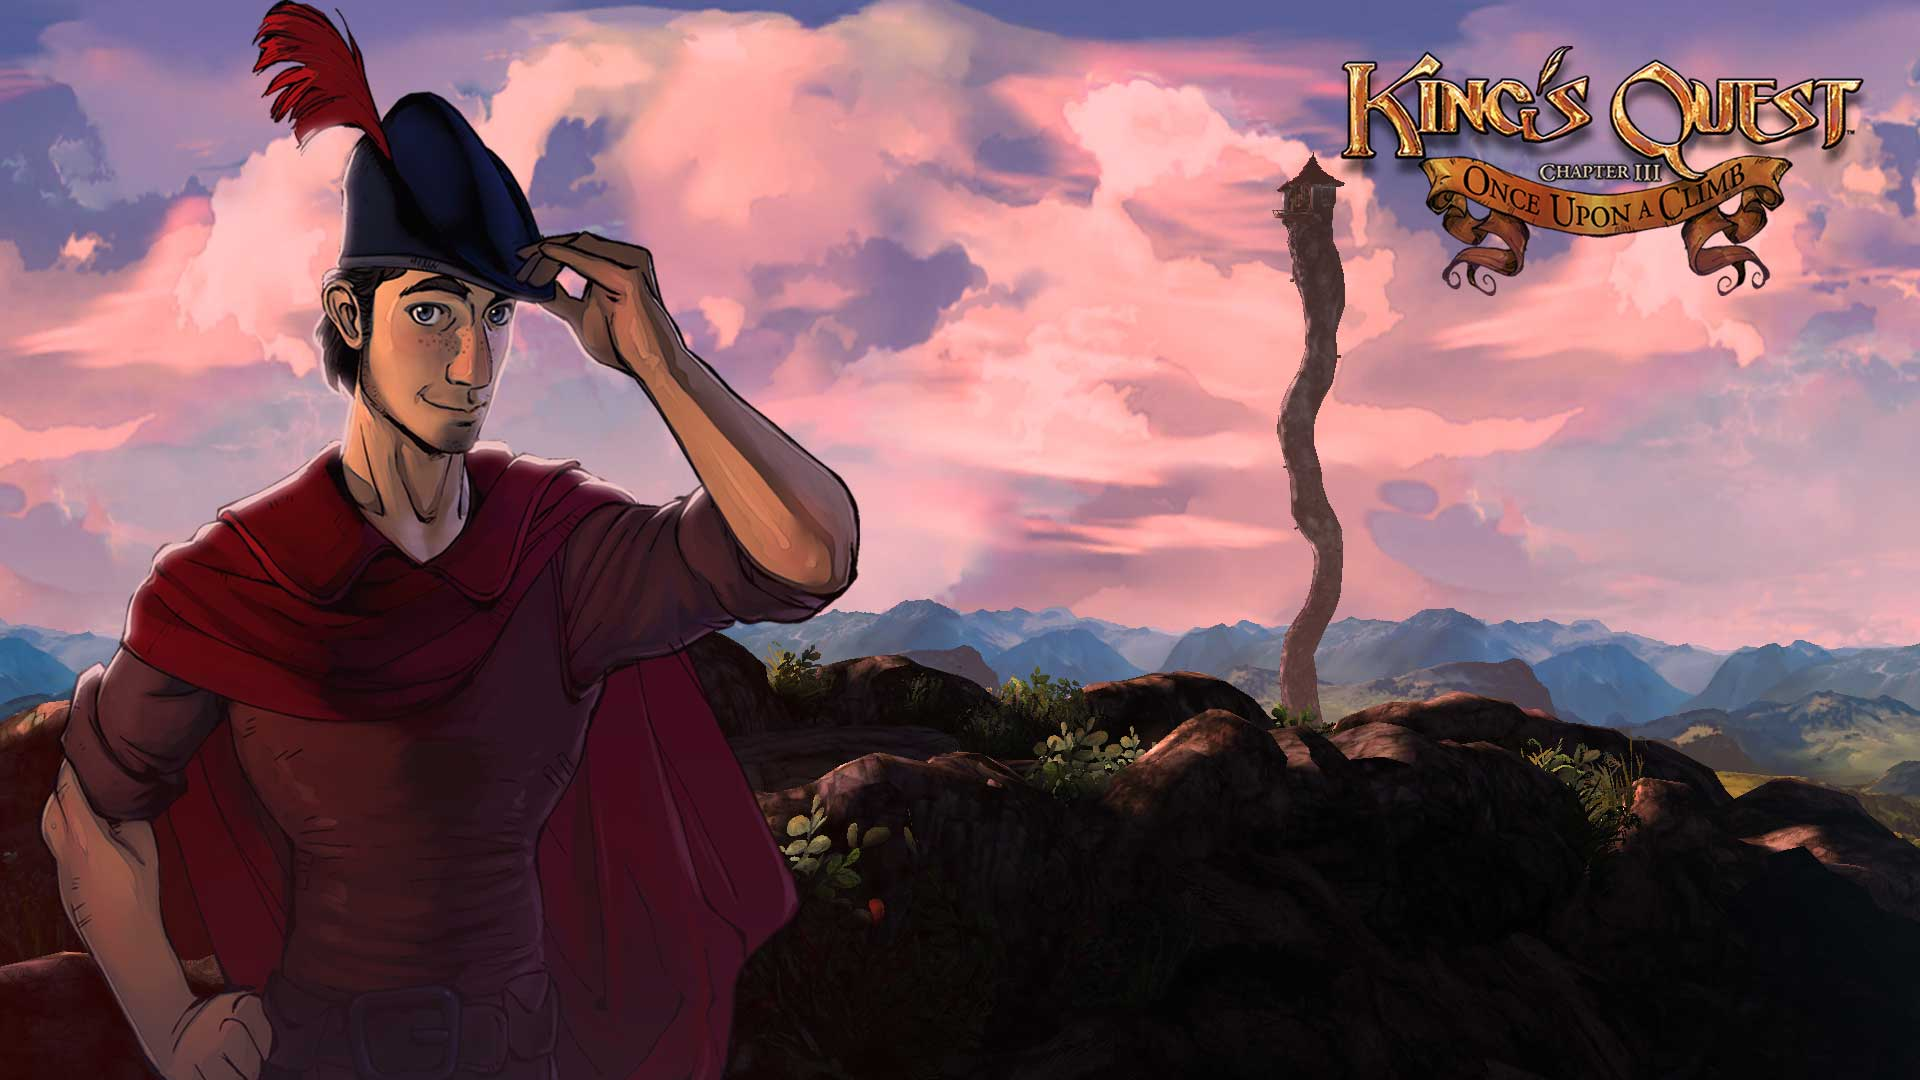 King's Quest Chapter 3: Once Upon a Climb